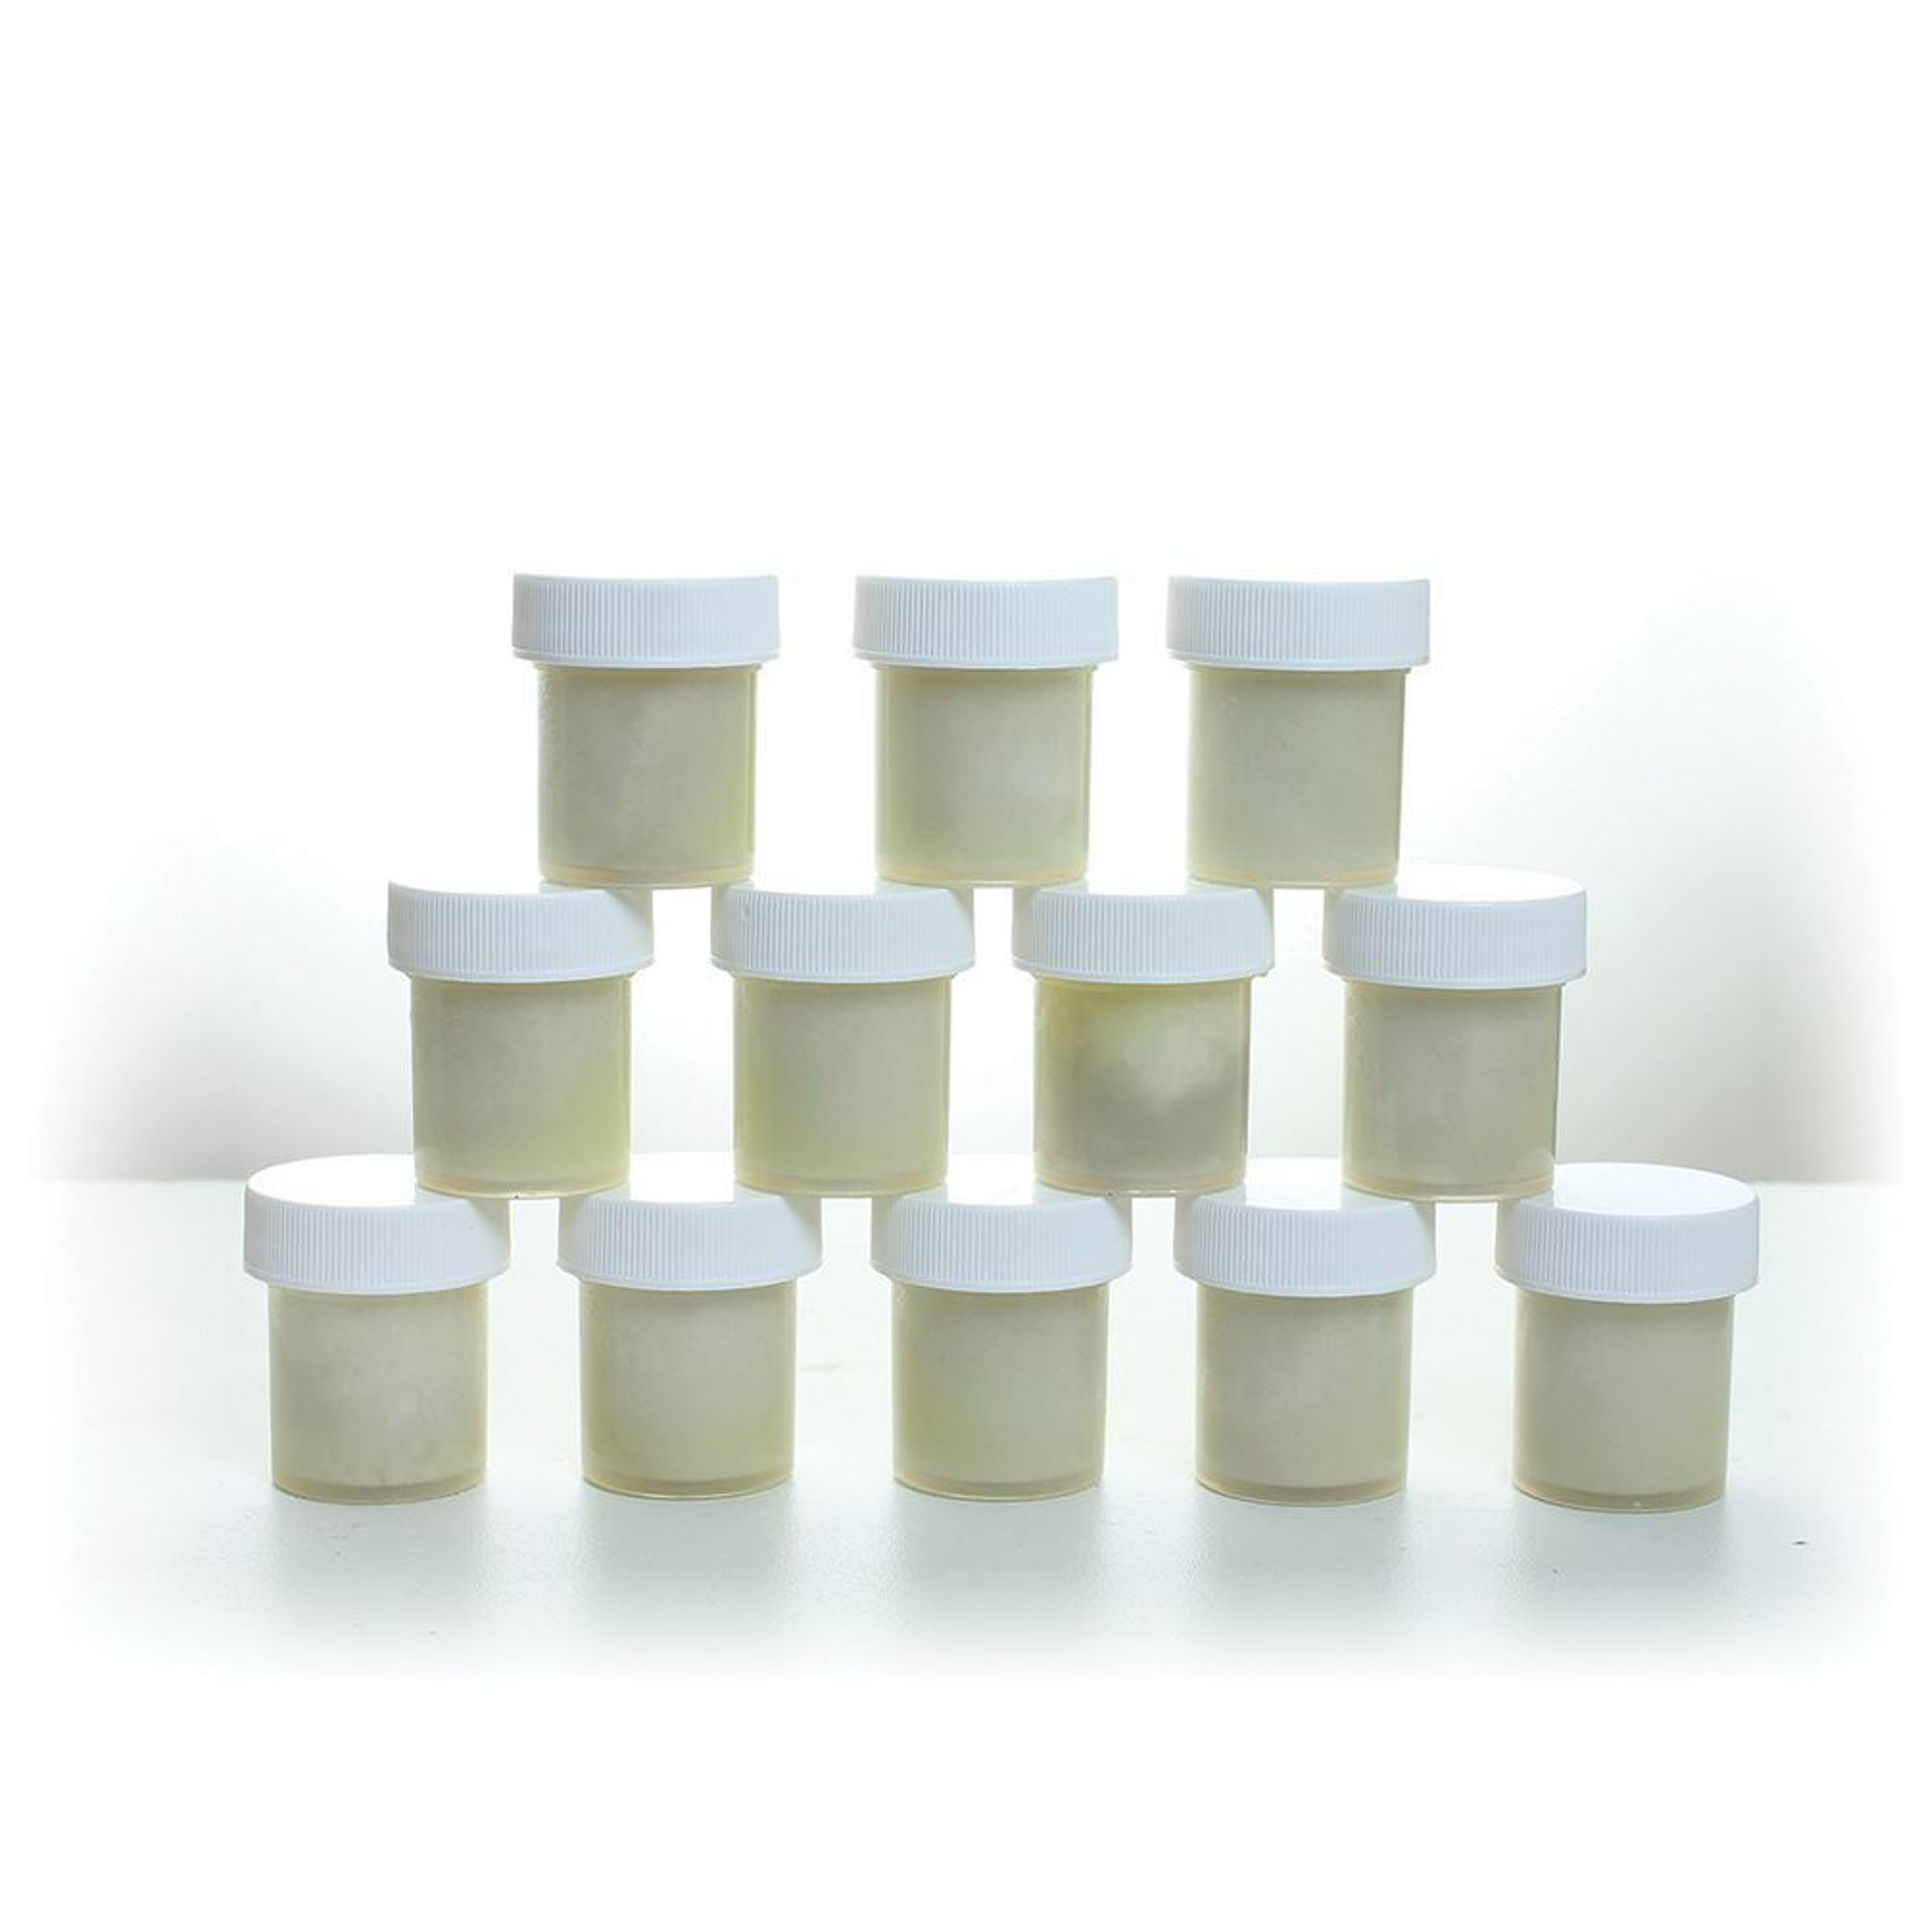 Picture of 12 - ½ oz. Jars Of Shea Butter: White